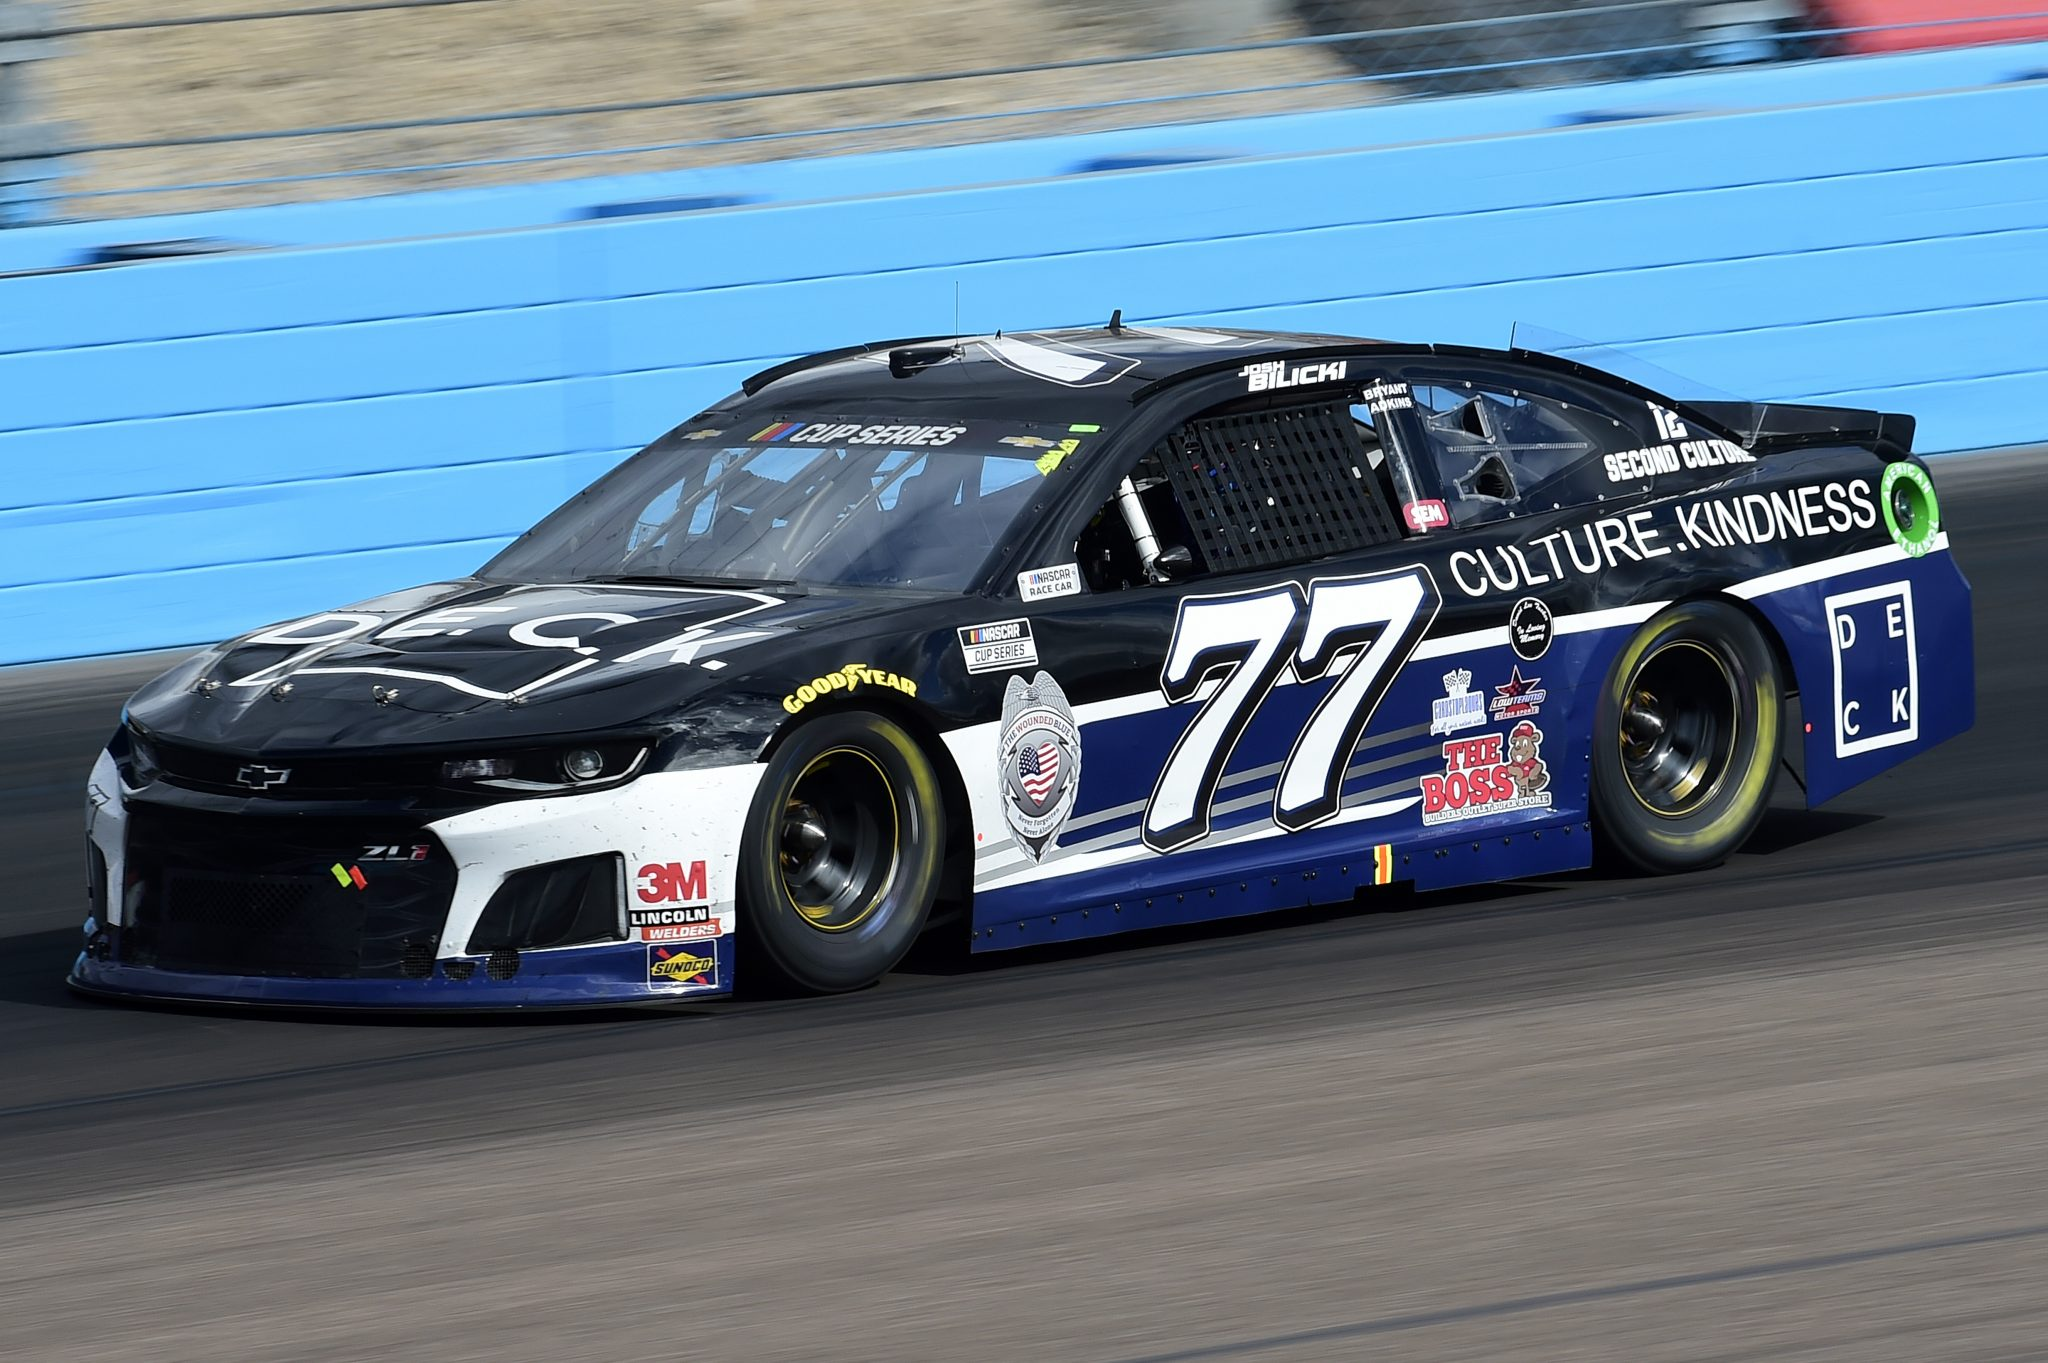 AVONDALE, ARIZONA - NOVEMBER 08: Josh Bilicki, driver of the #77 RacingForTheTruth.com Chevrolet, drives during the NASCAR Cup Series Season Finale 500 at Phoenix Raceway on November 08, 2020 in Avondale, Arizona. (Photo by Jared C. Tilton/Getty Images) | Getty Images